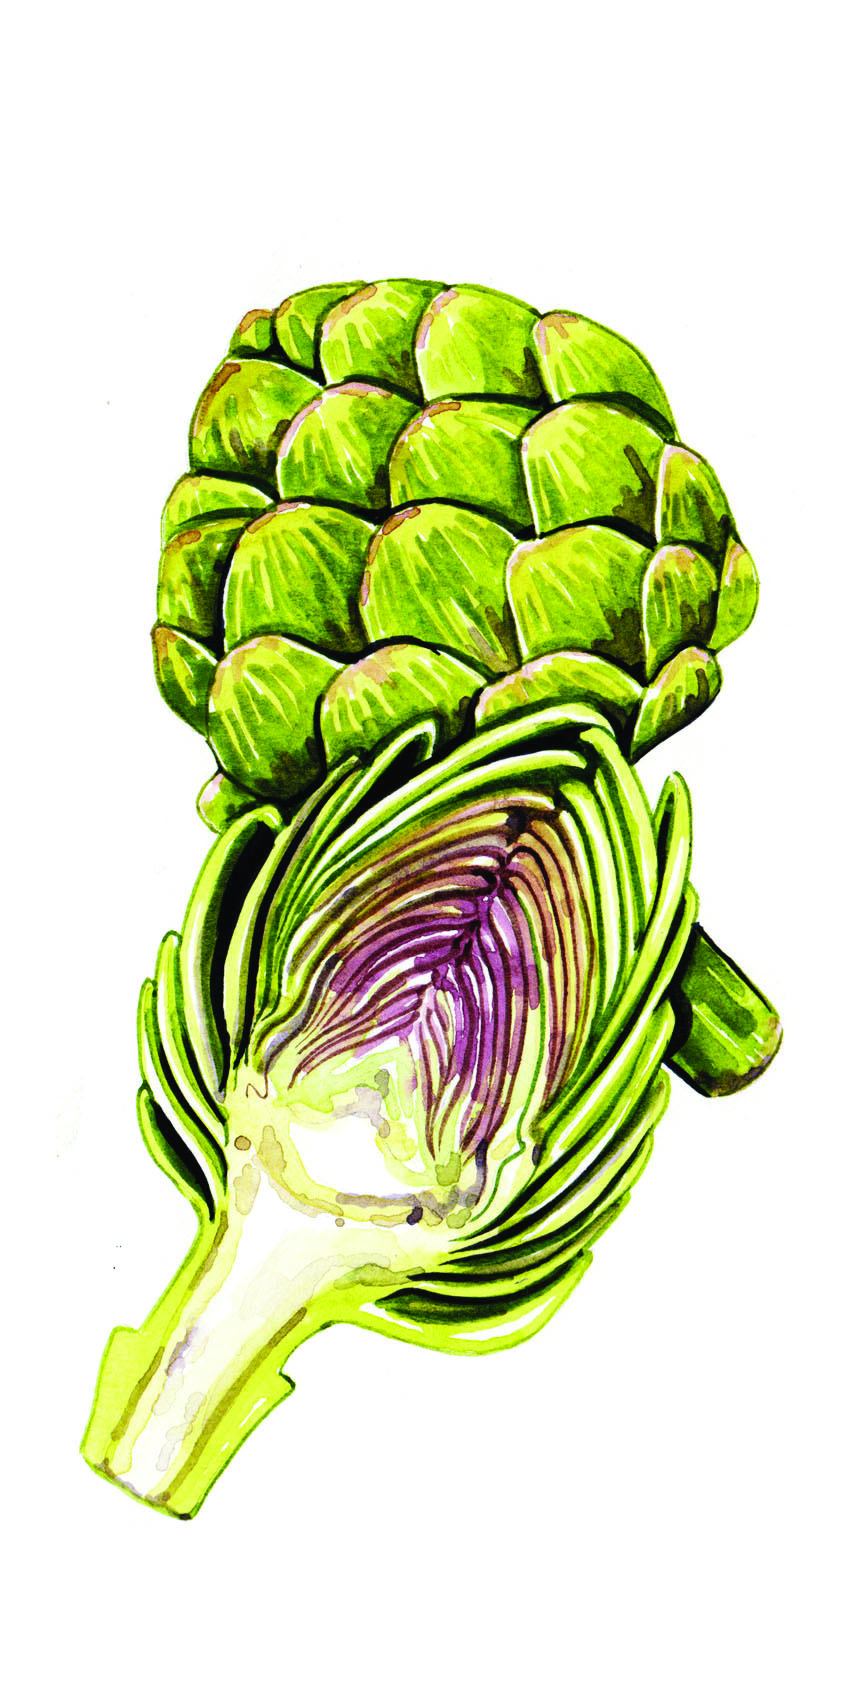 artichoke food illustration watercolour